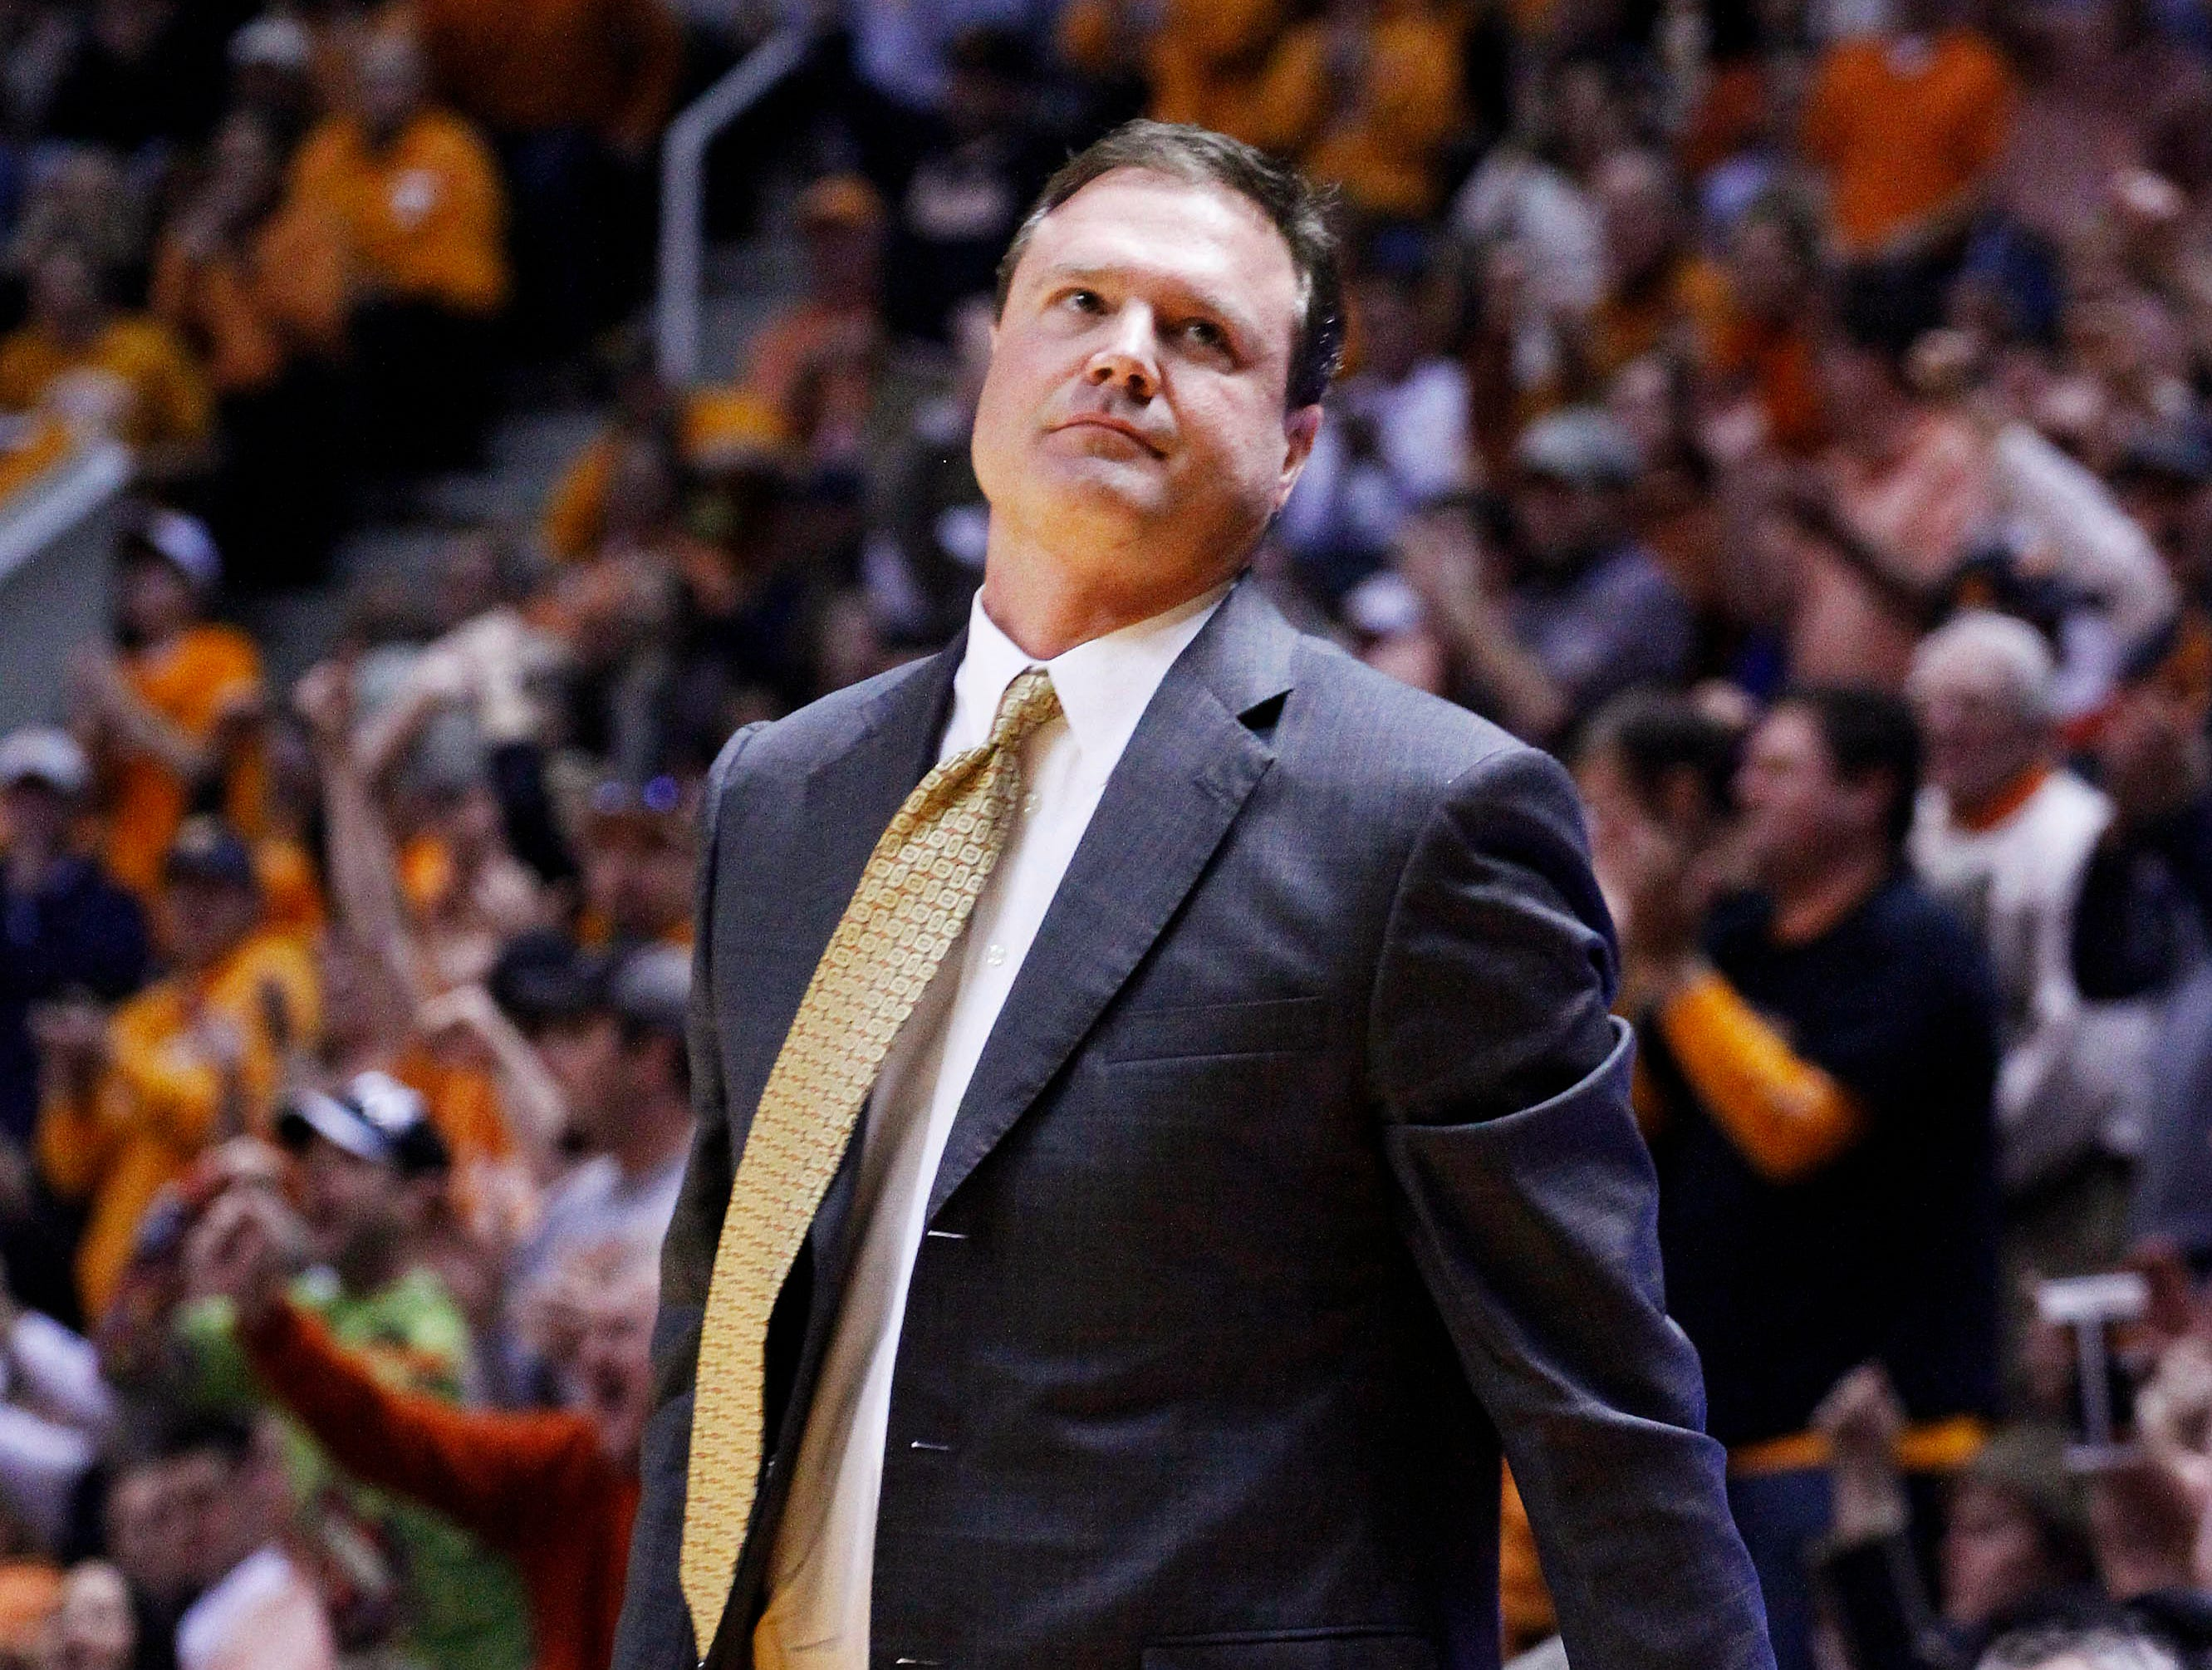 Kansas head coach Bill Self looks on as Tennessee scores during the first half of an NCAA college basketball game Sunday, Jan. 10, 2010, in Knoxville, Tenn. Tennessee won 76-68.